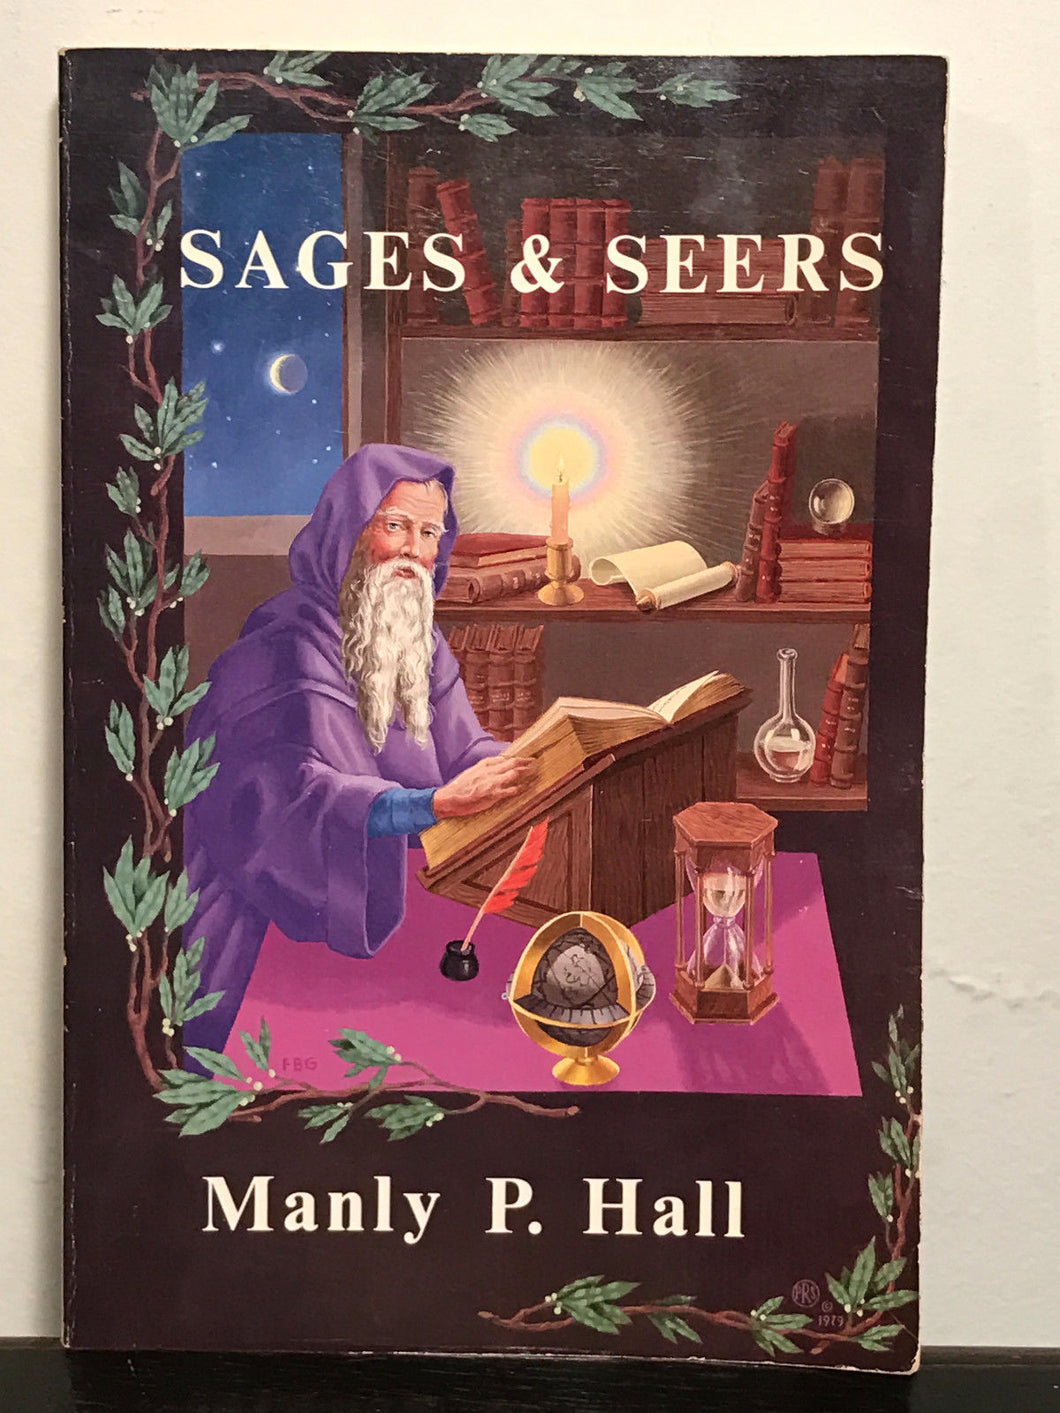 SAGES & SEERS by MANLY P. HALL, SC, Illustrated 1979